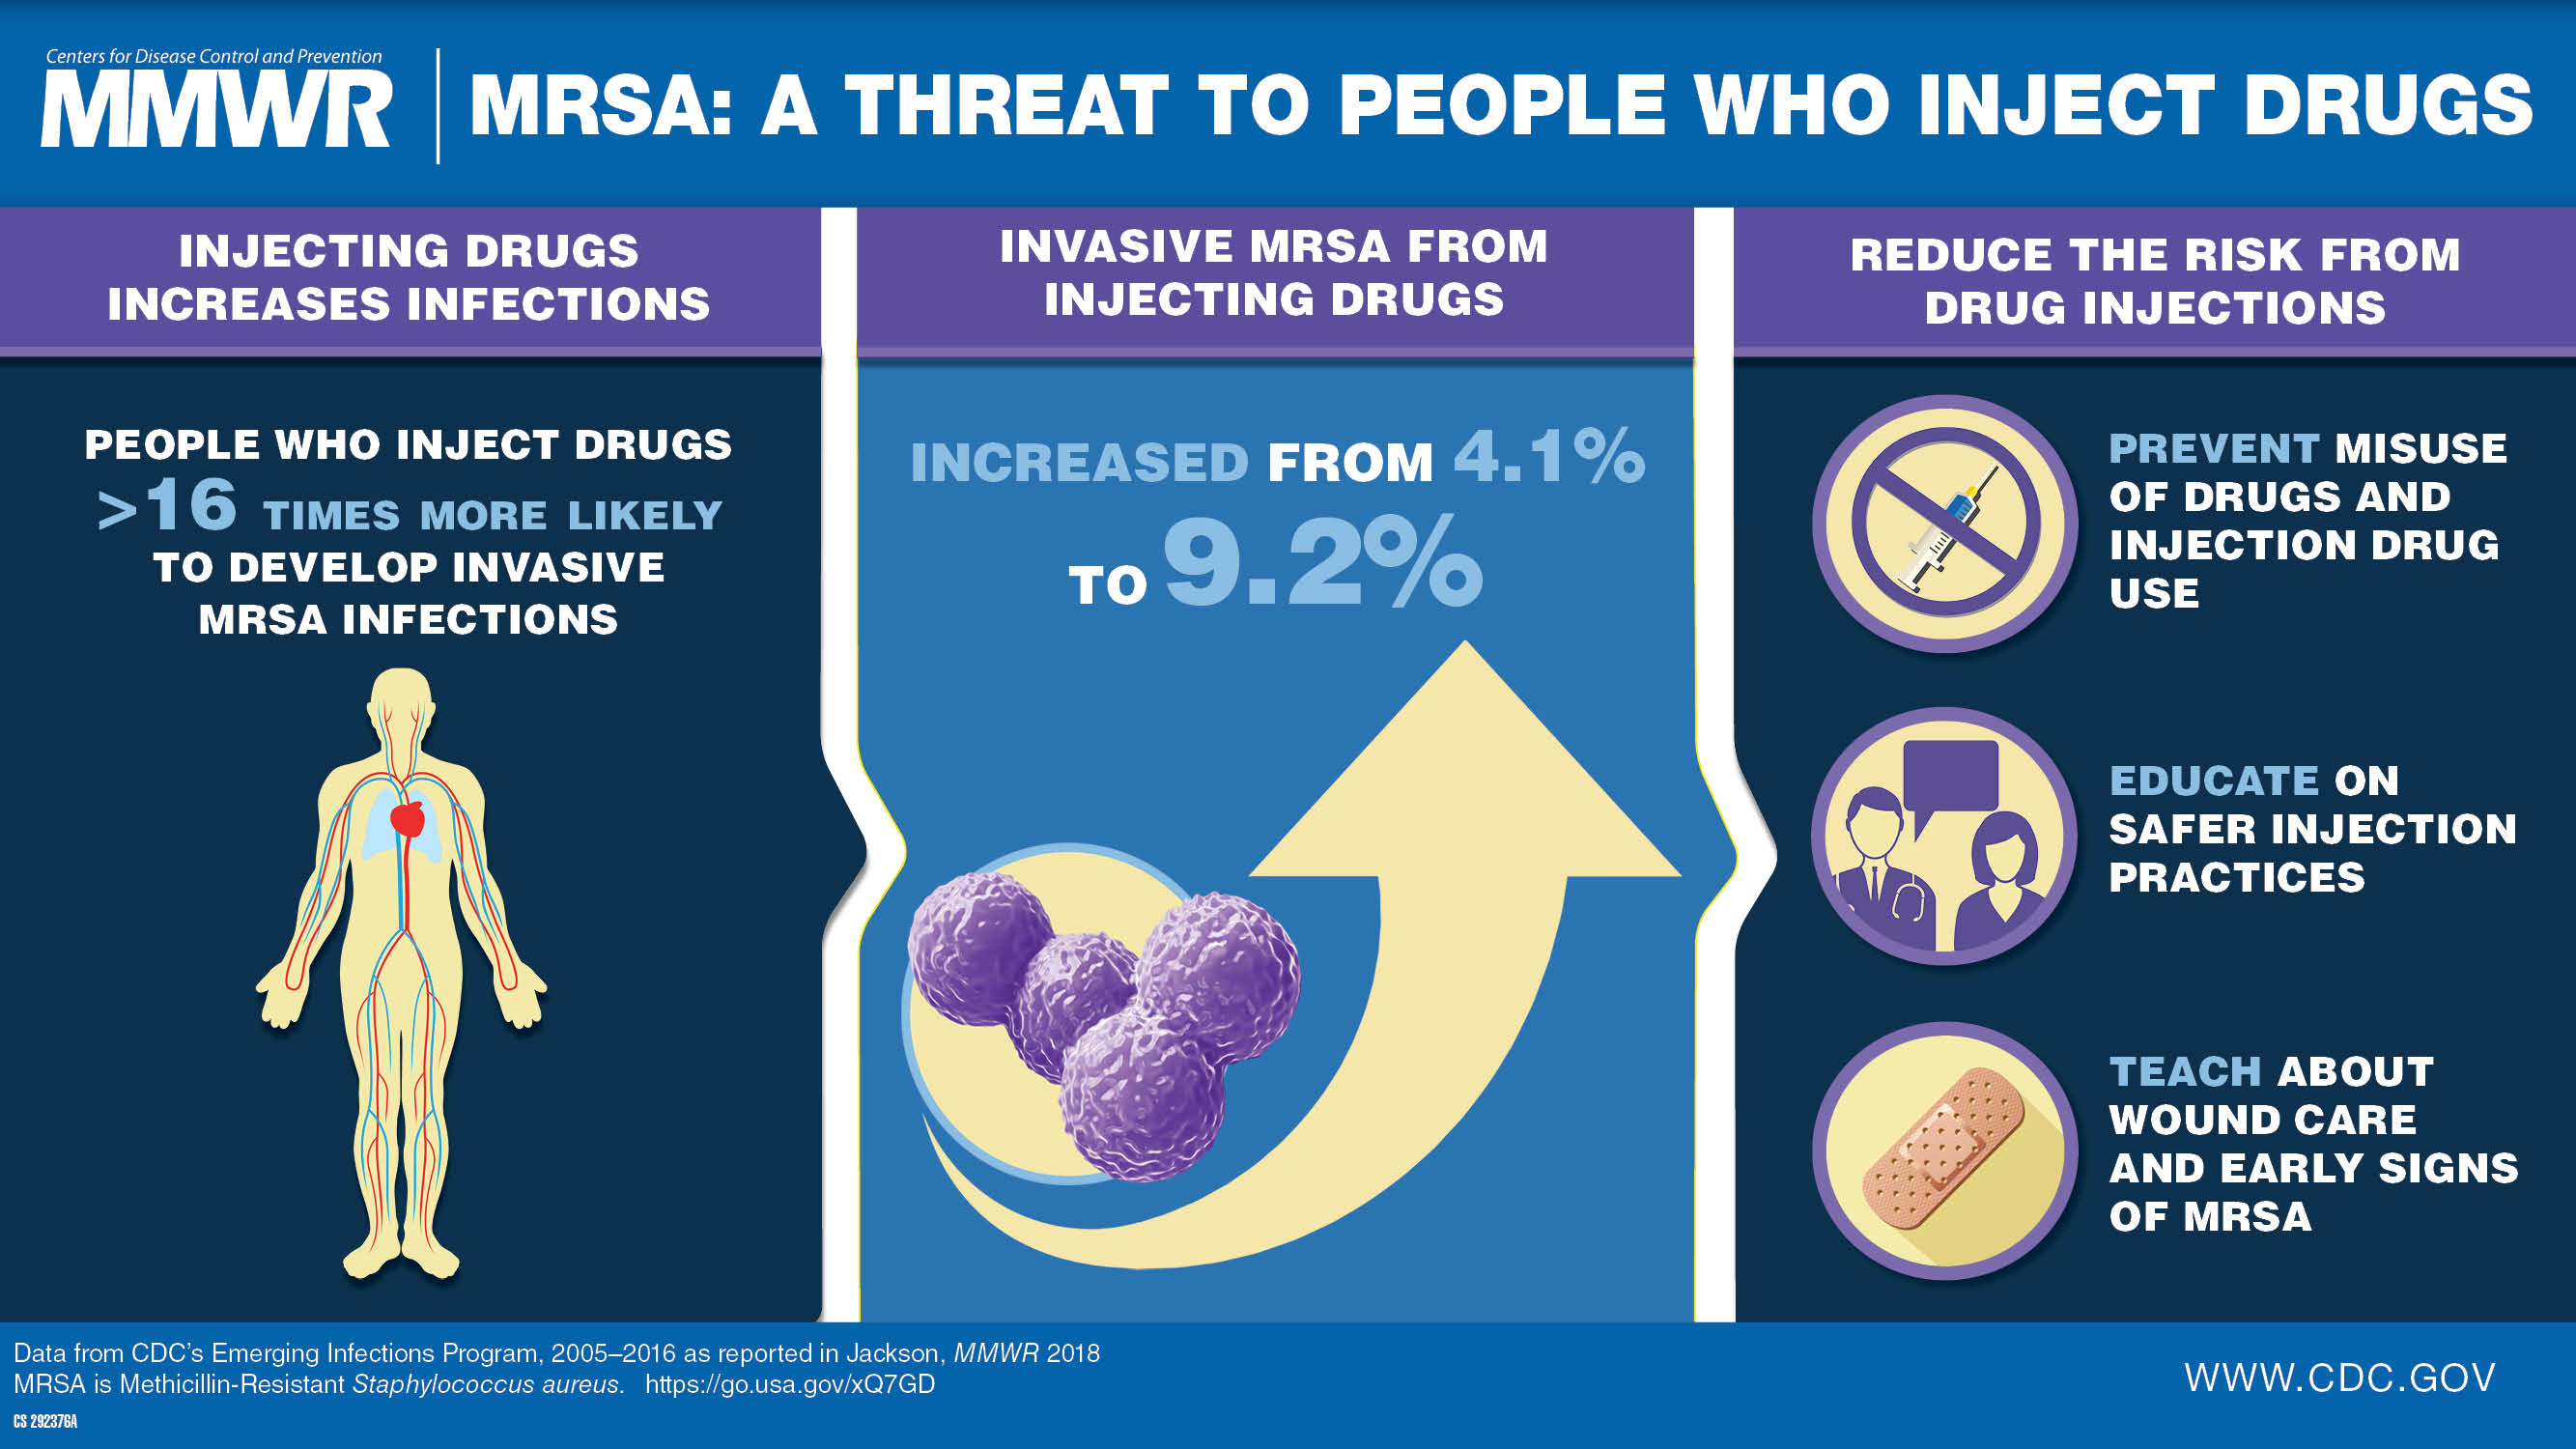 Rheumatologists Define New Role Amid Opioid Epidemic Healio >> Pwid 16 Times Likelier To Develop Invasive Mrsa Infections